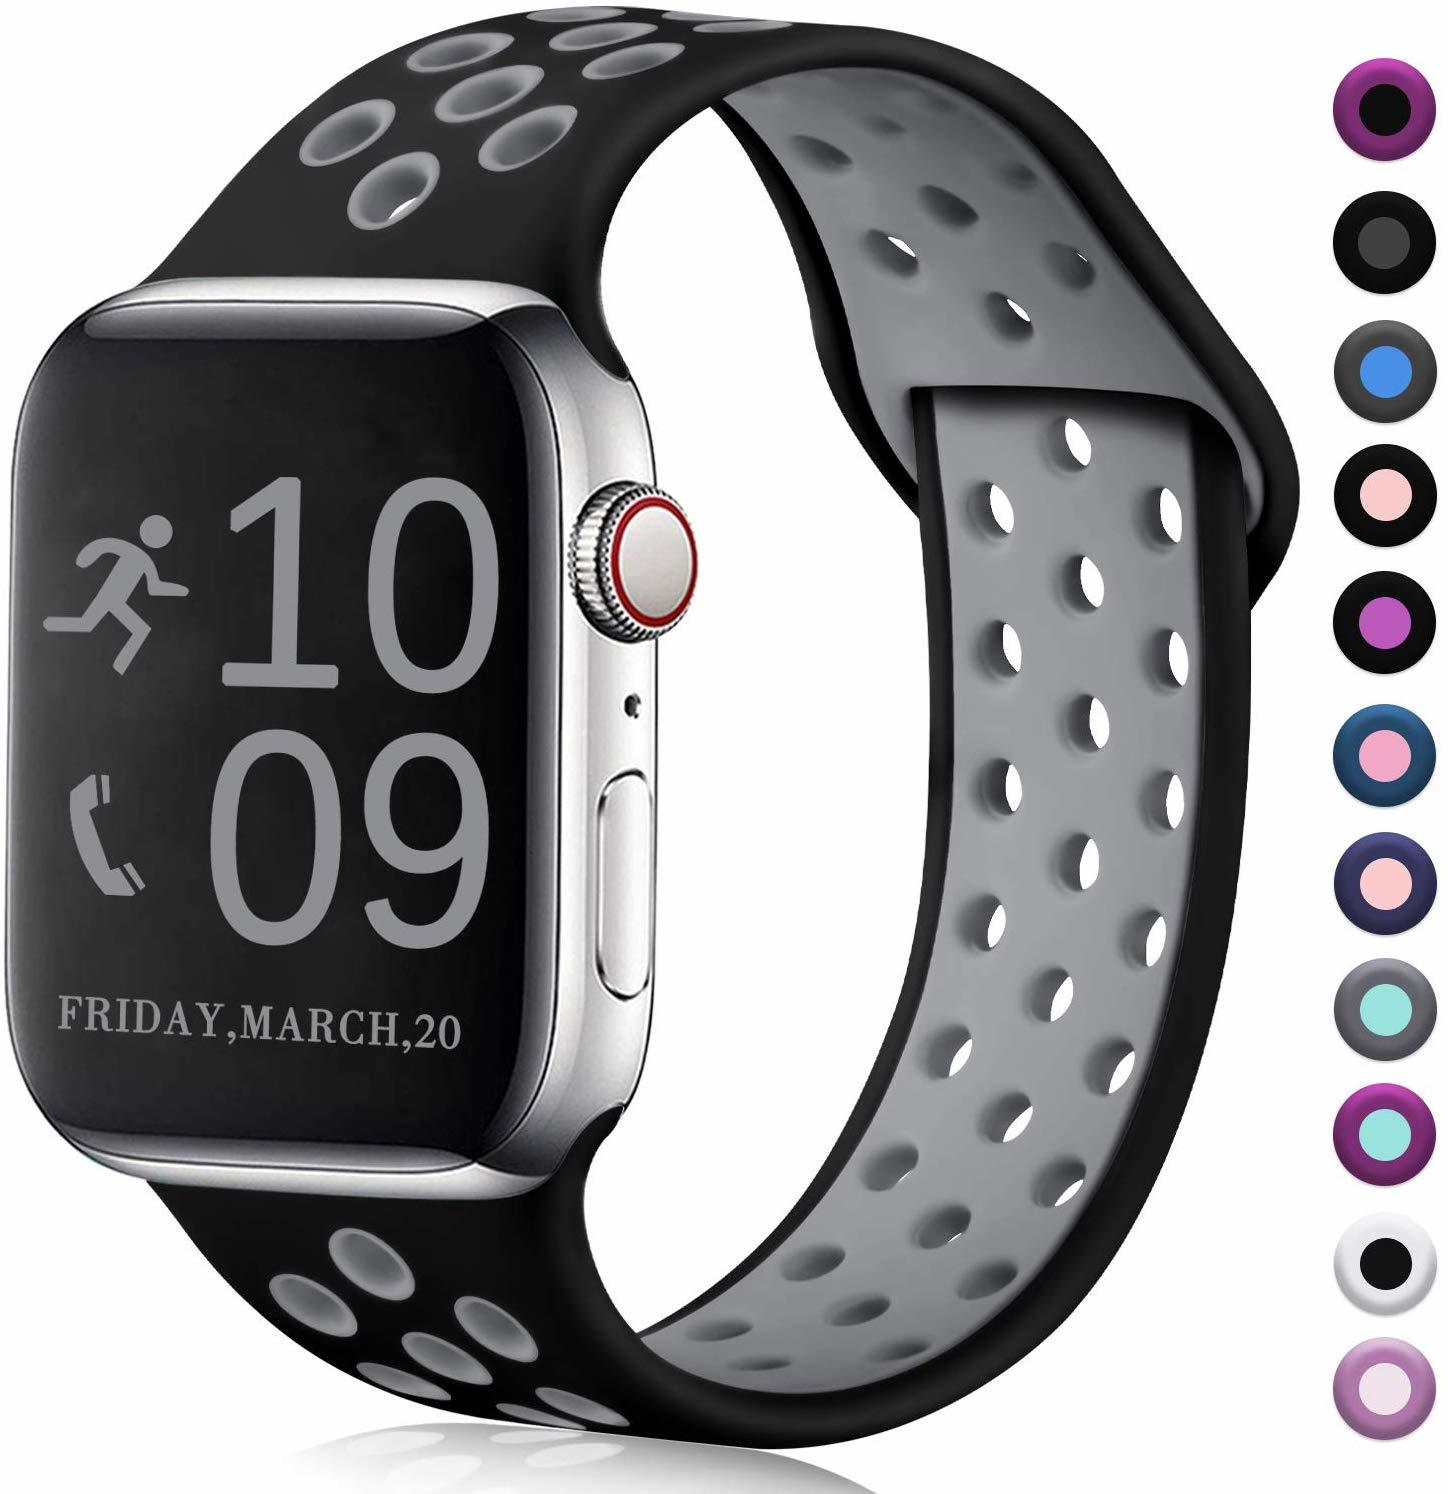 Ape Basics: Replacement Sport Band for Apple Watch - Black/Gray (42mm/44mm, 240mm) image